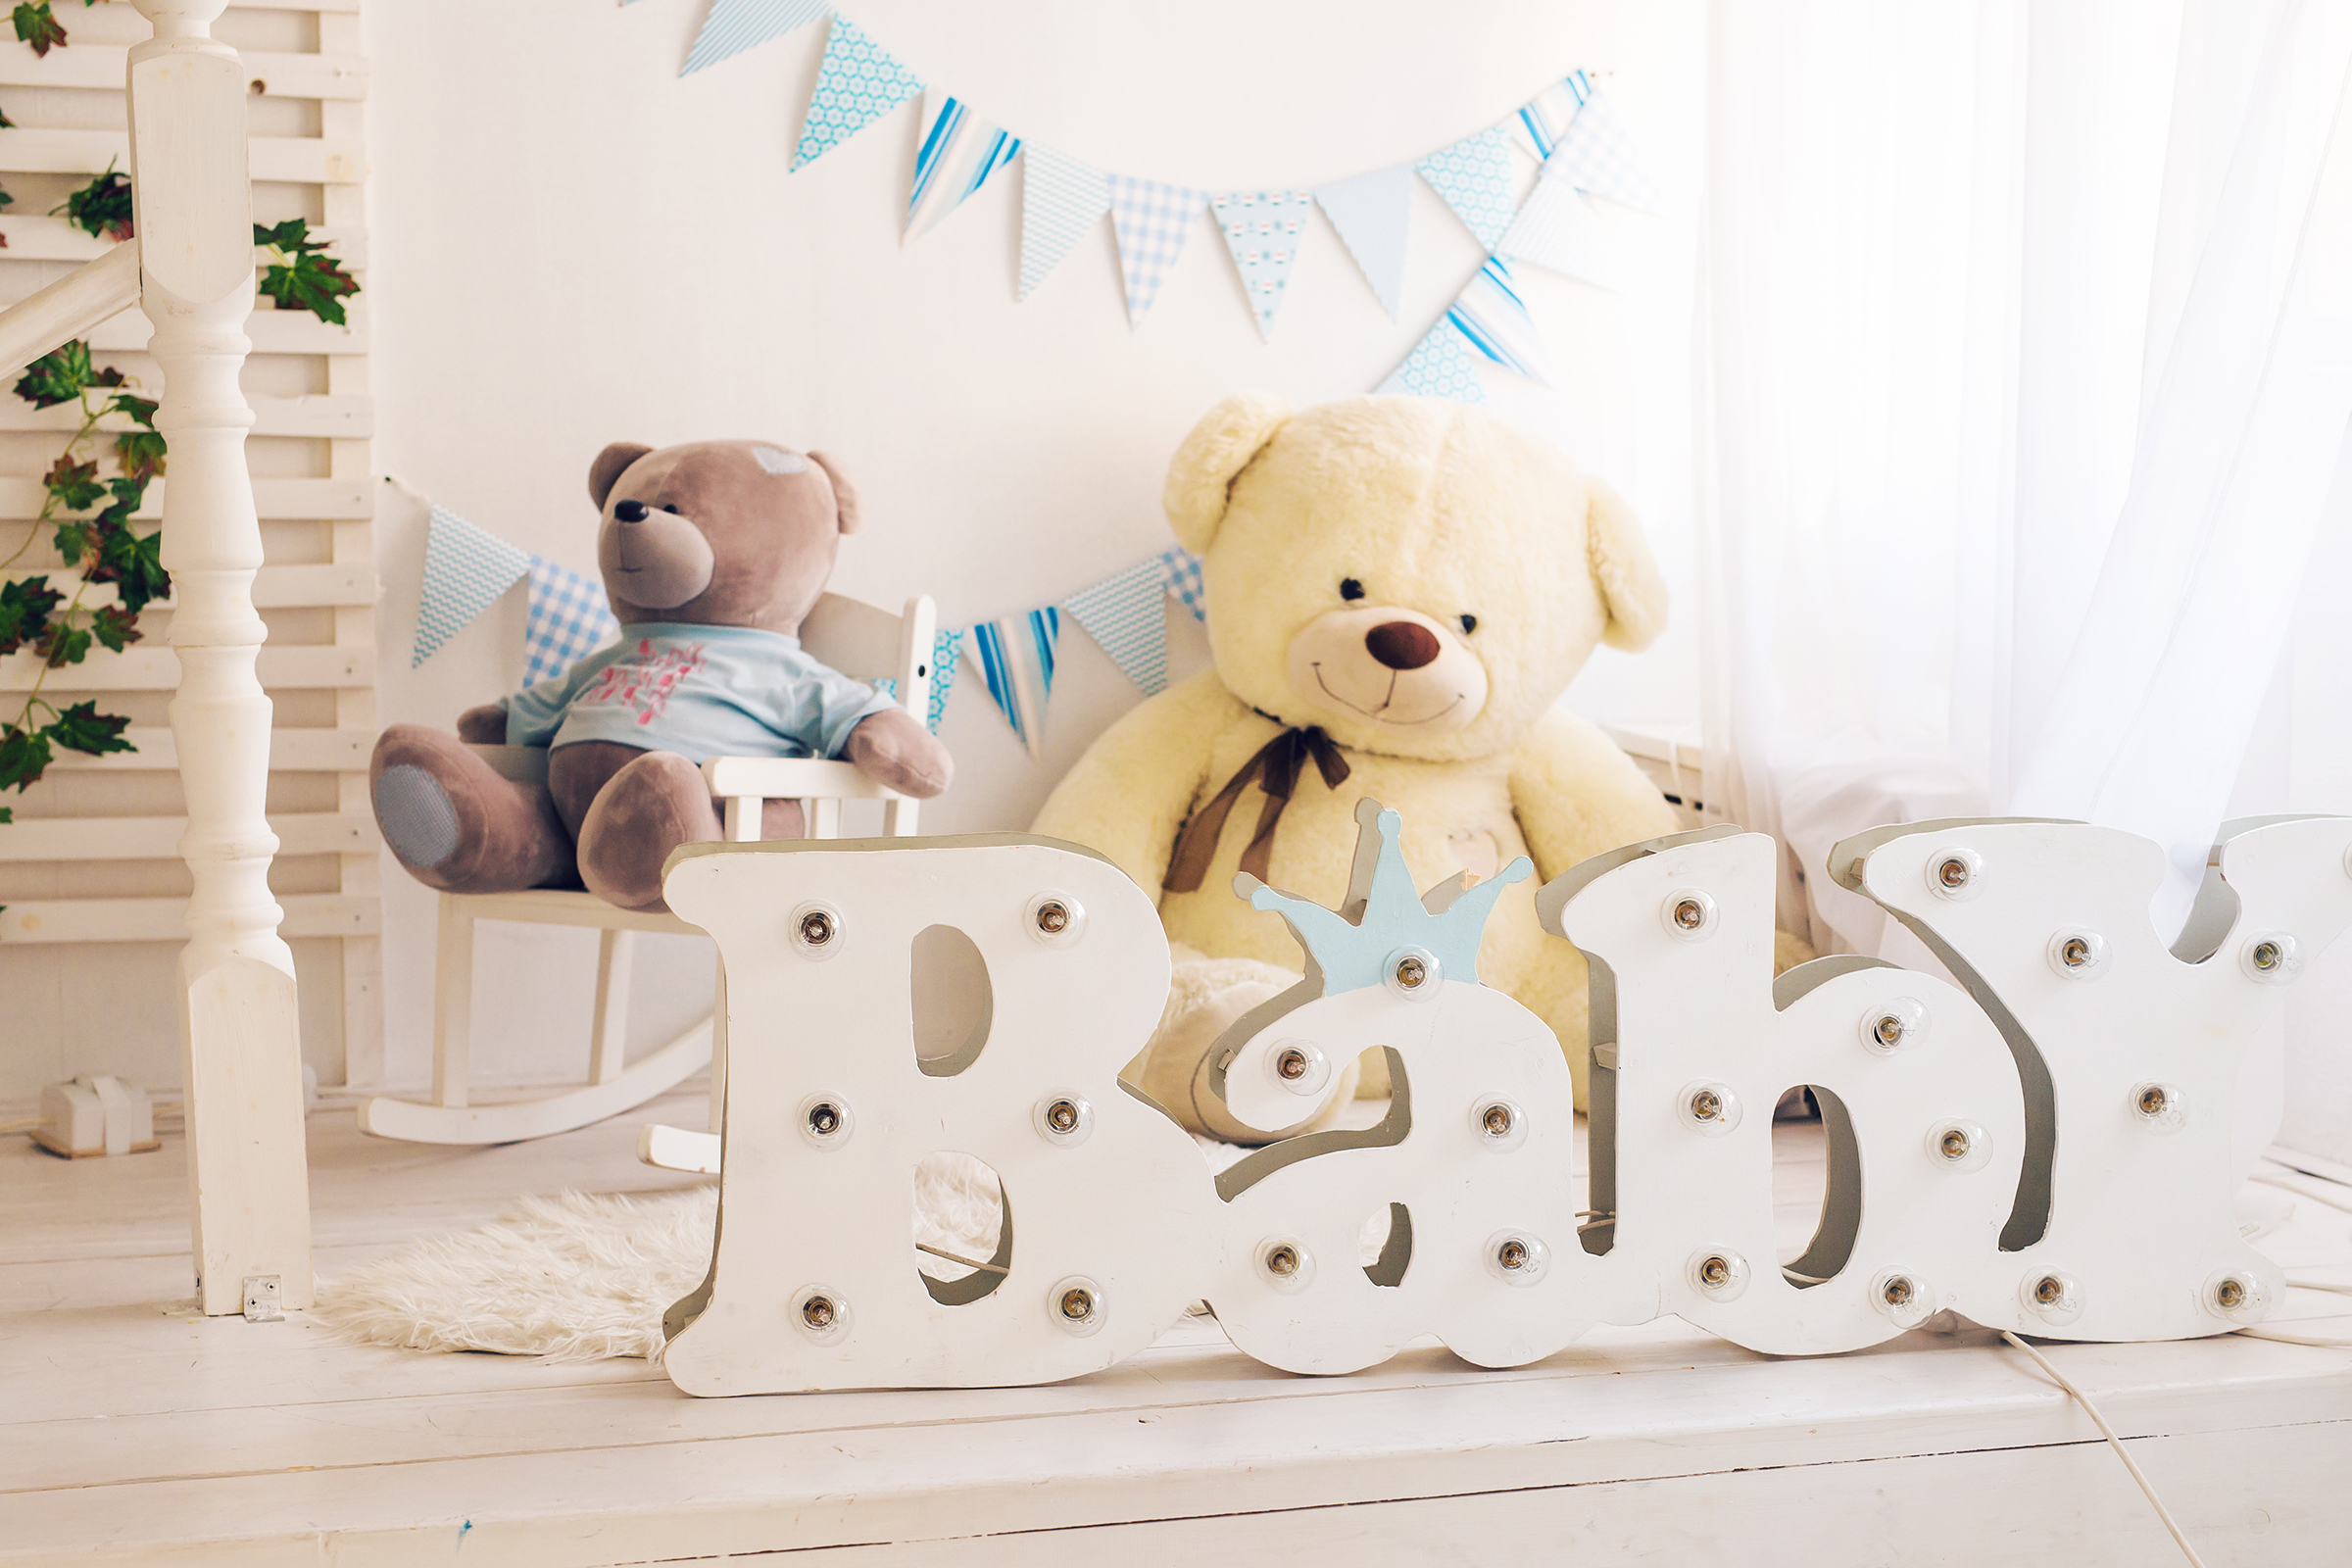 Teddy bear 4873 in a children's room 54276